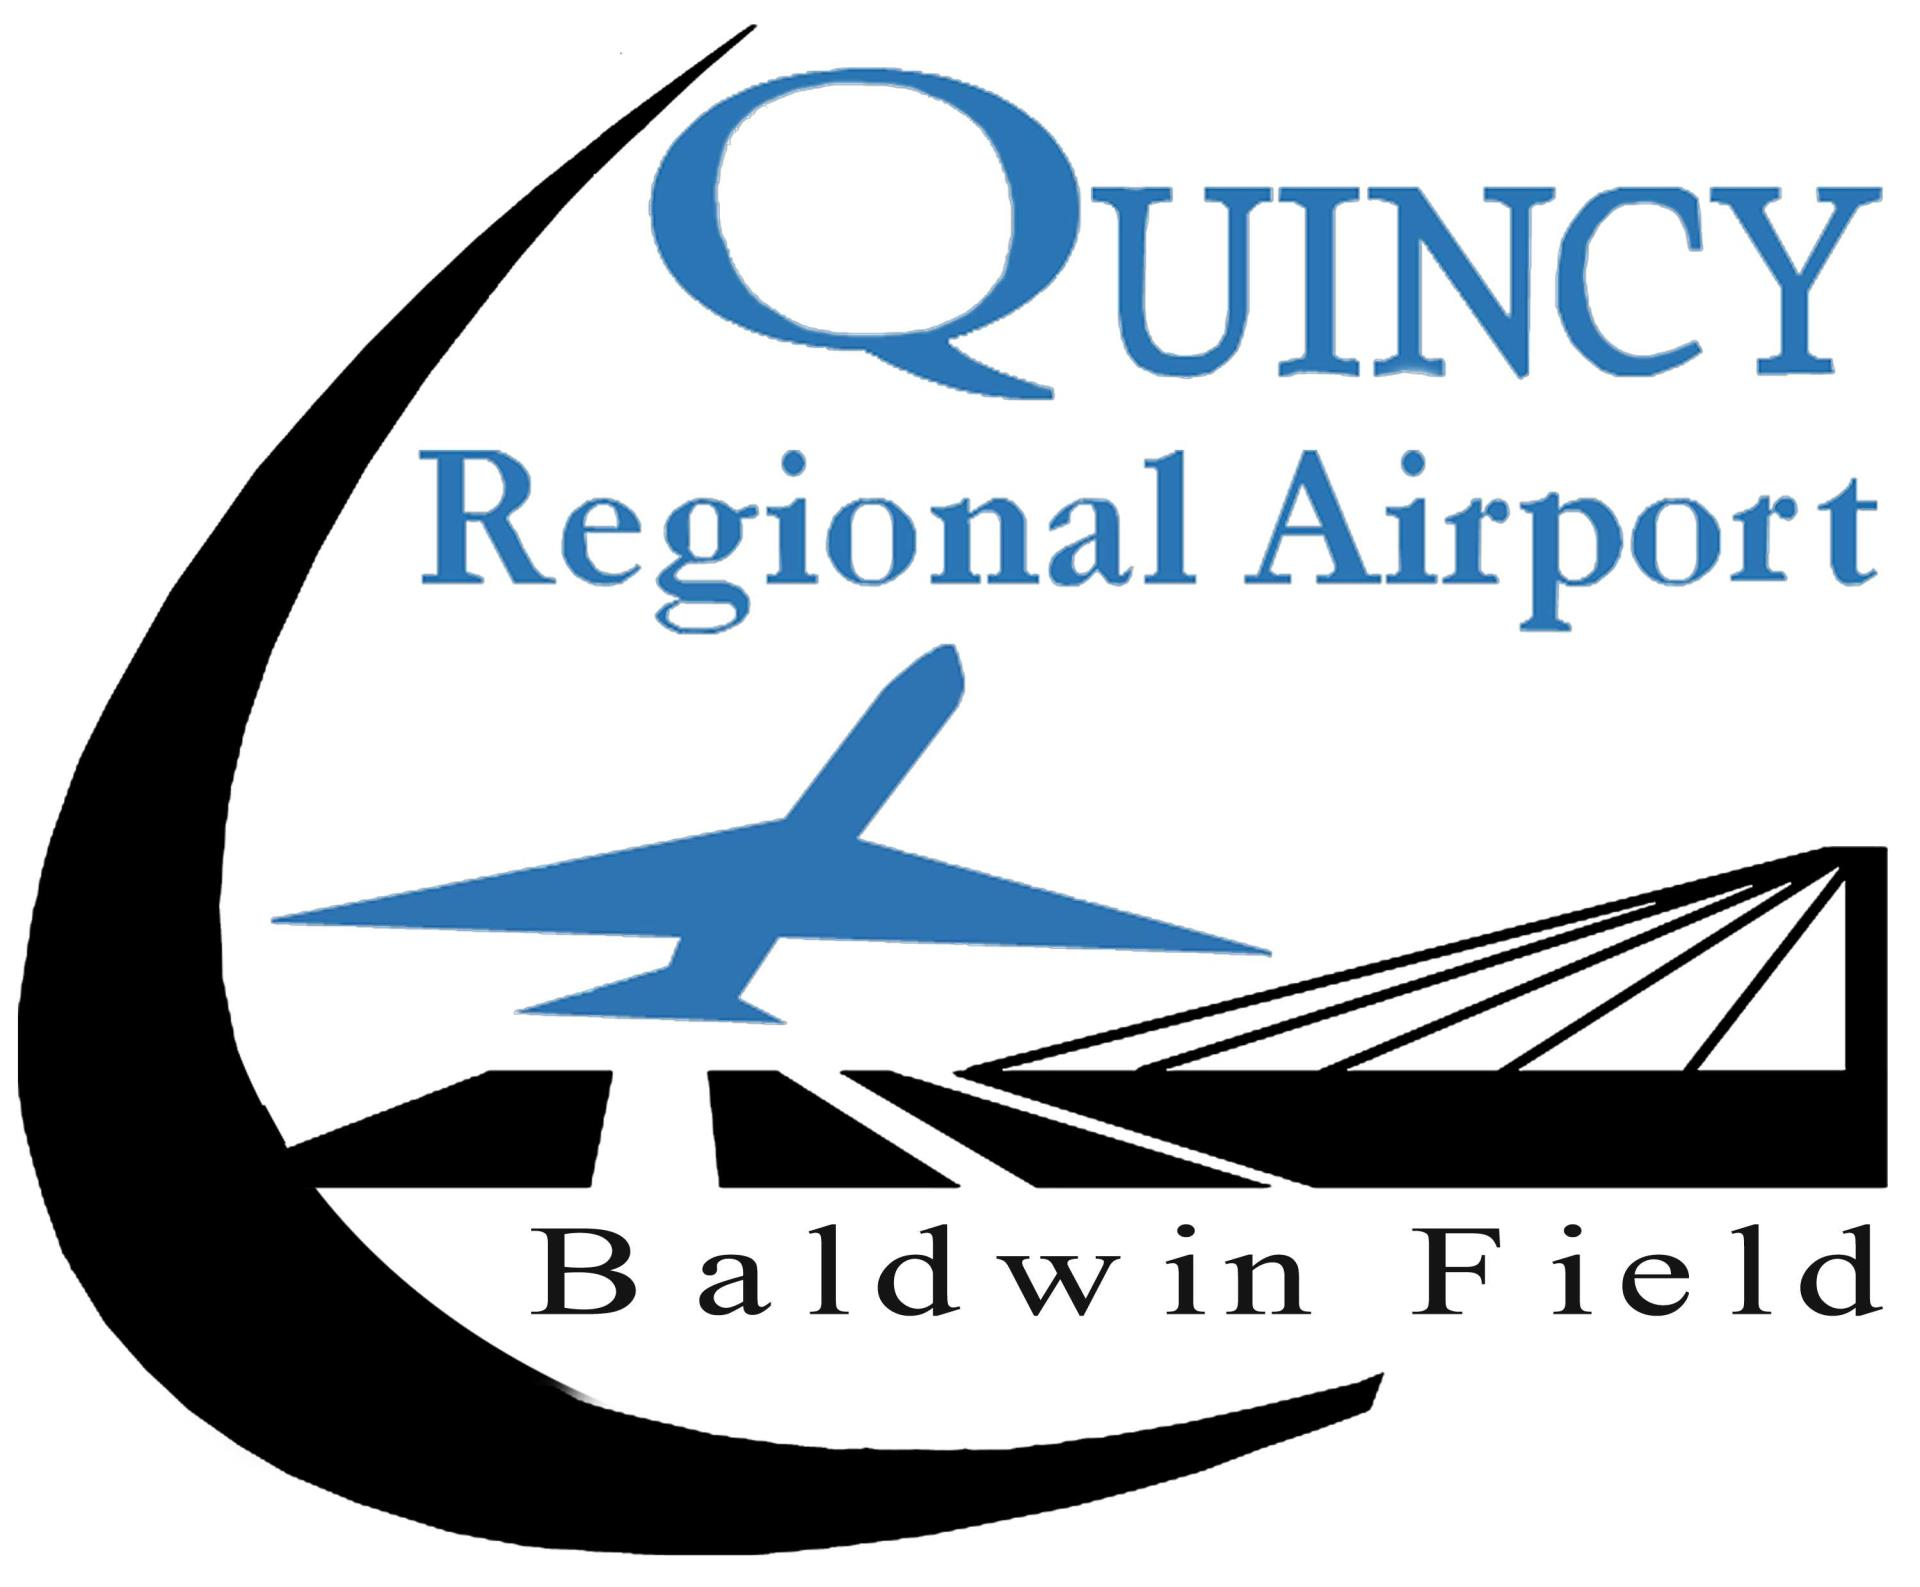 Quincy Regional Airport | Quincy, IL on city of los angeles map, city of boise airport map, city of gold coast map, city of elgin map,